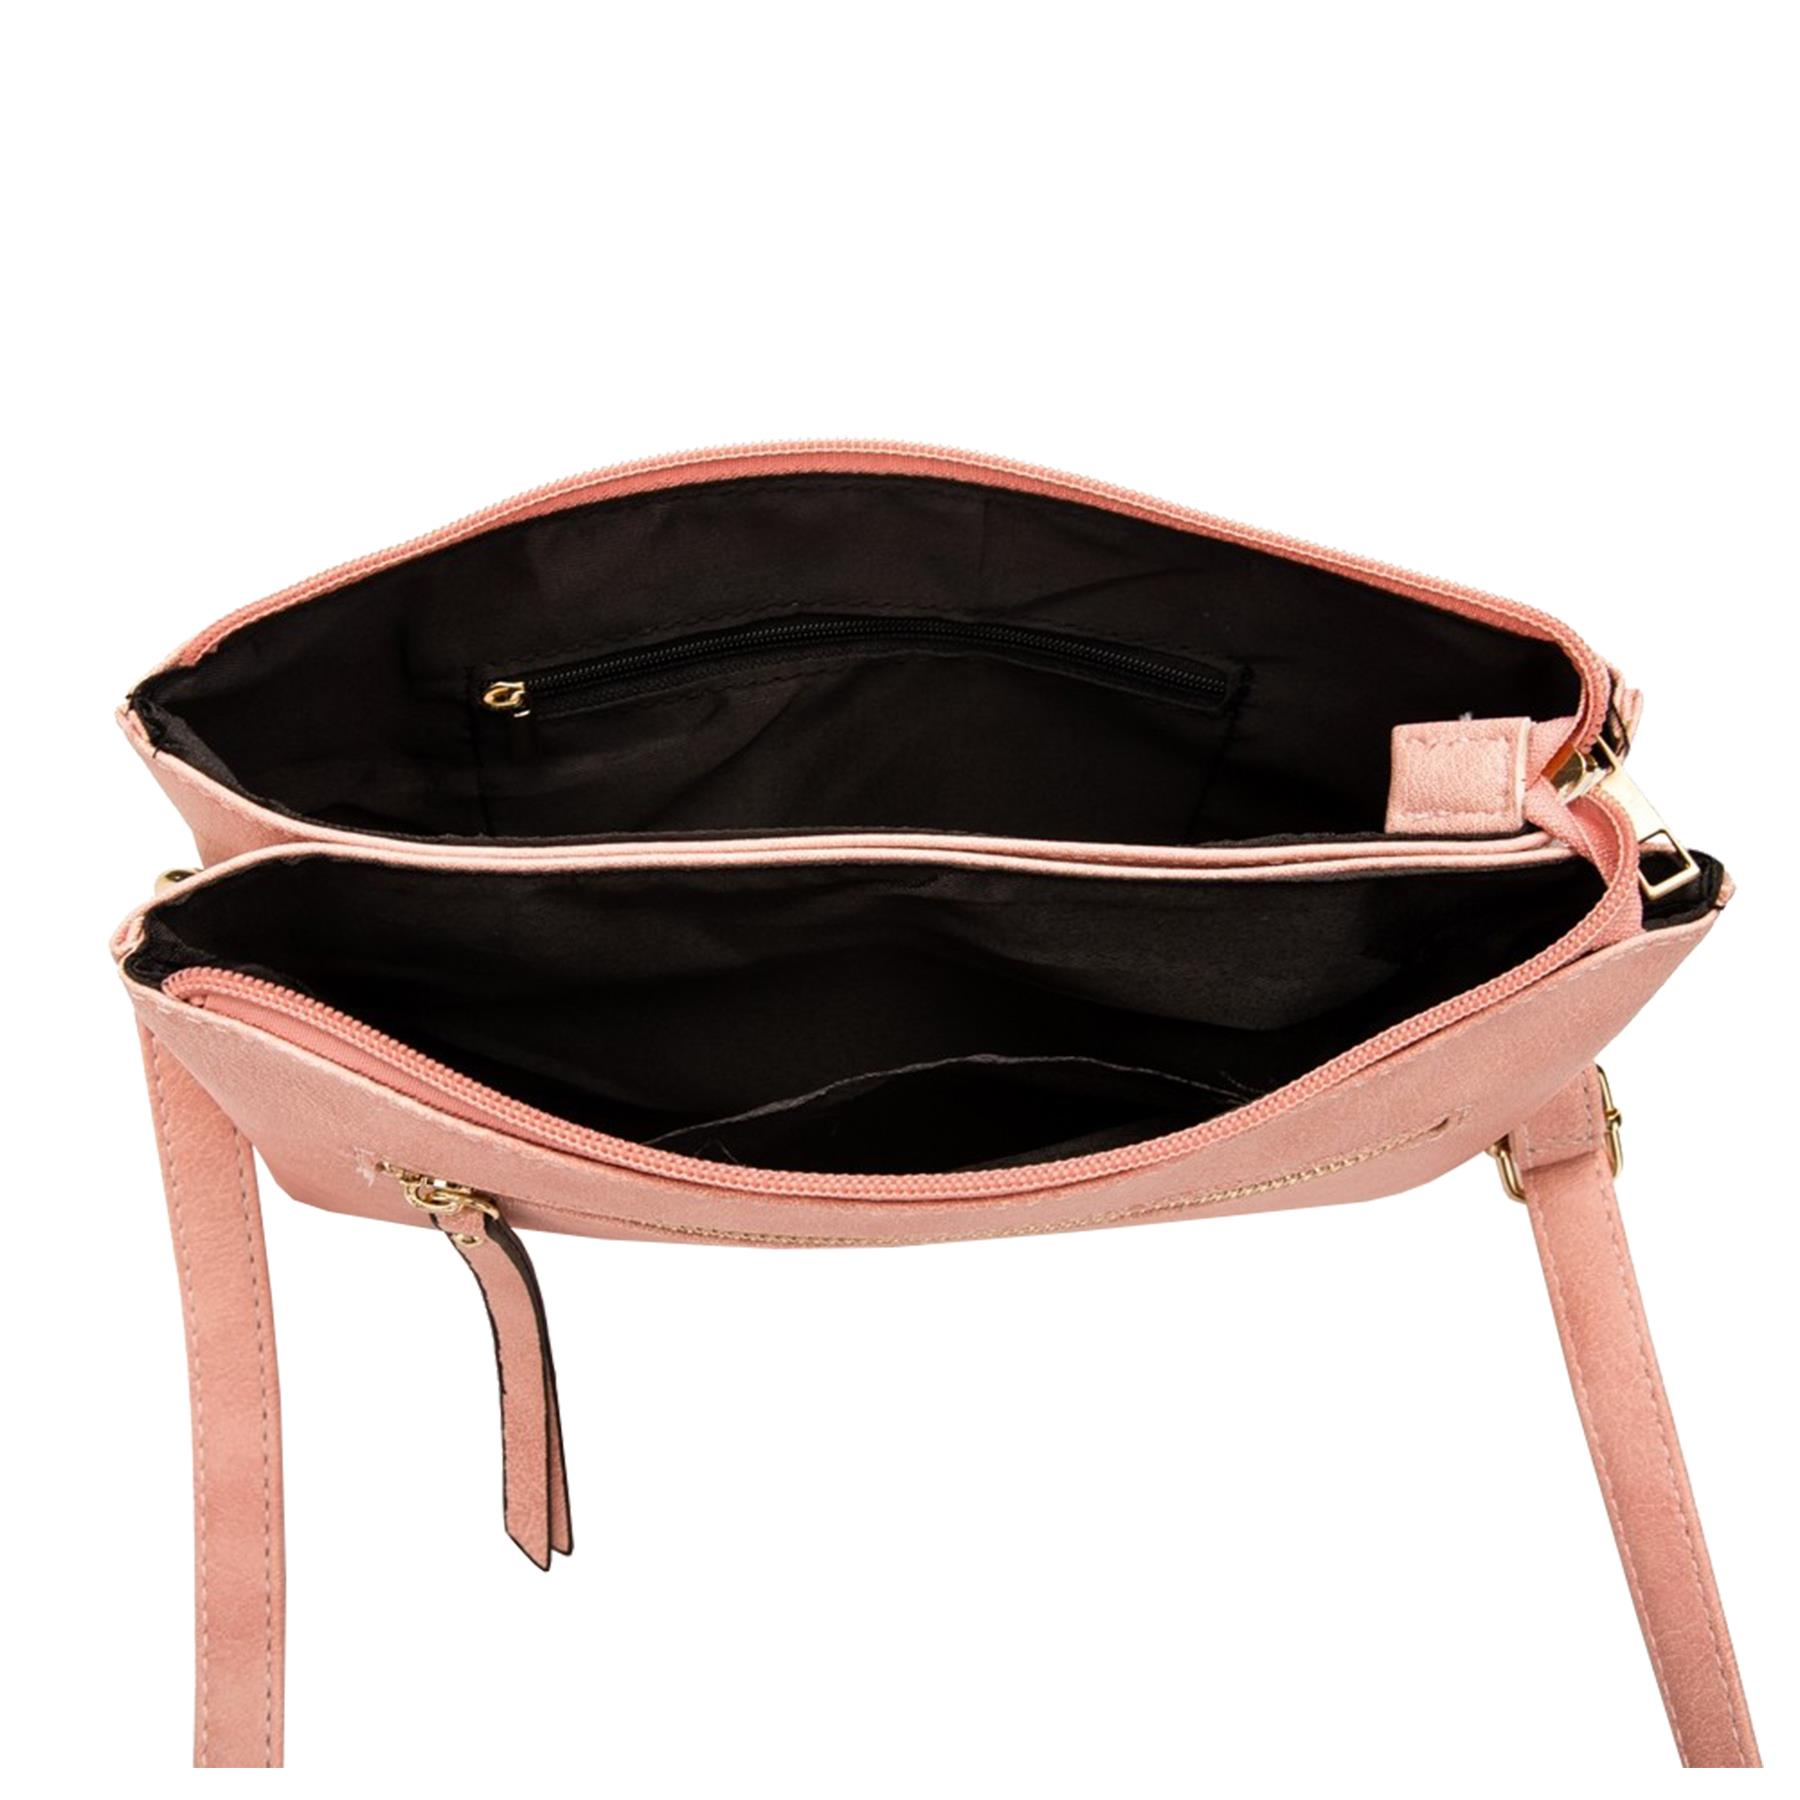 New-Plain-Synthetic-Leather-Women-s-Simple-Casual-Cross-Body-Bag thumbnail 10